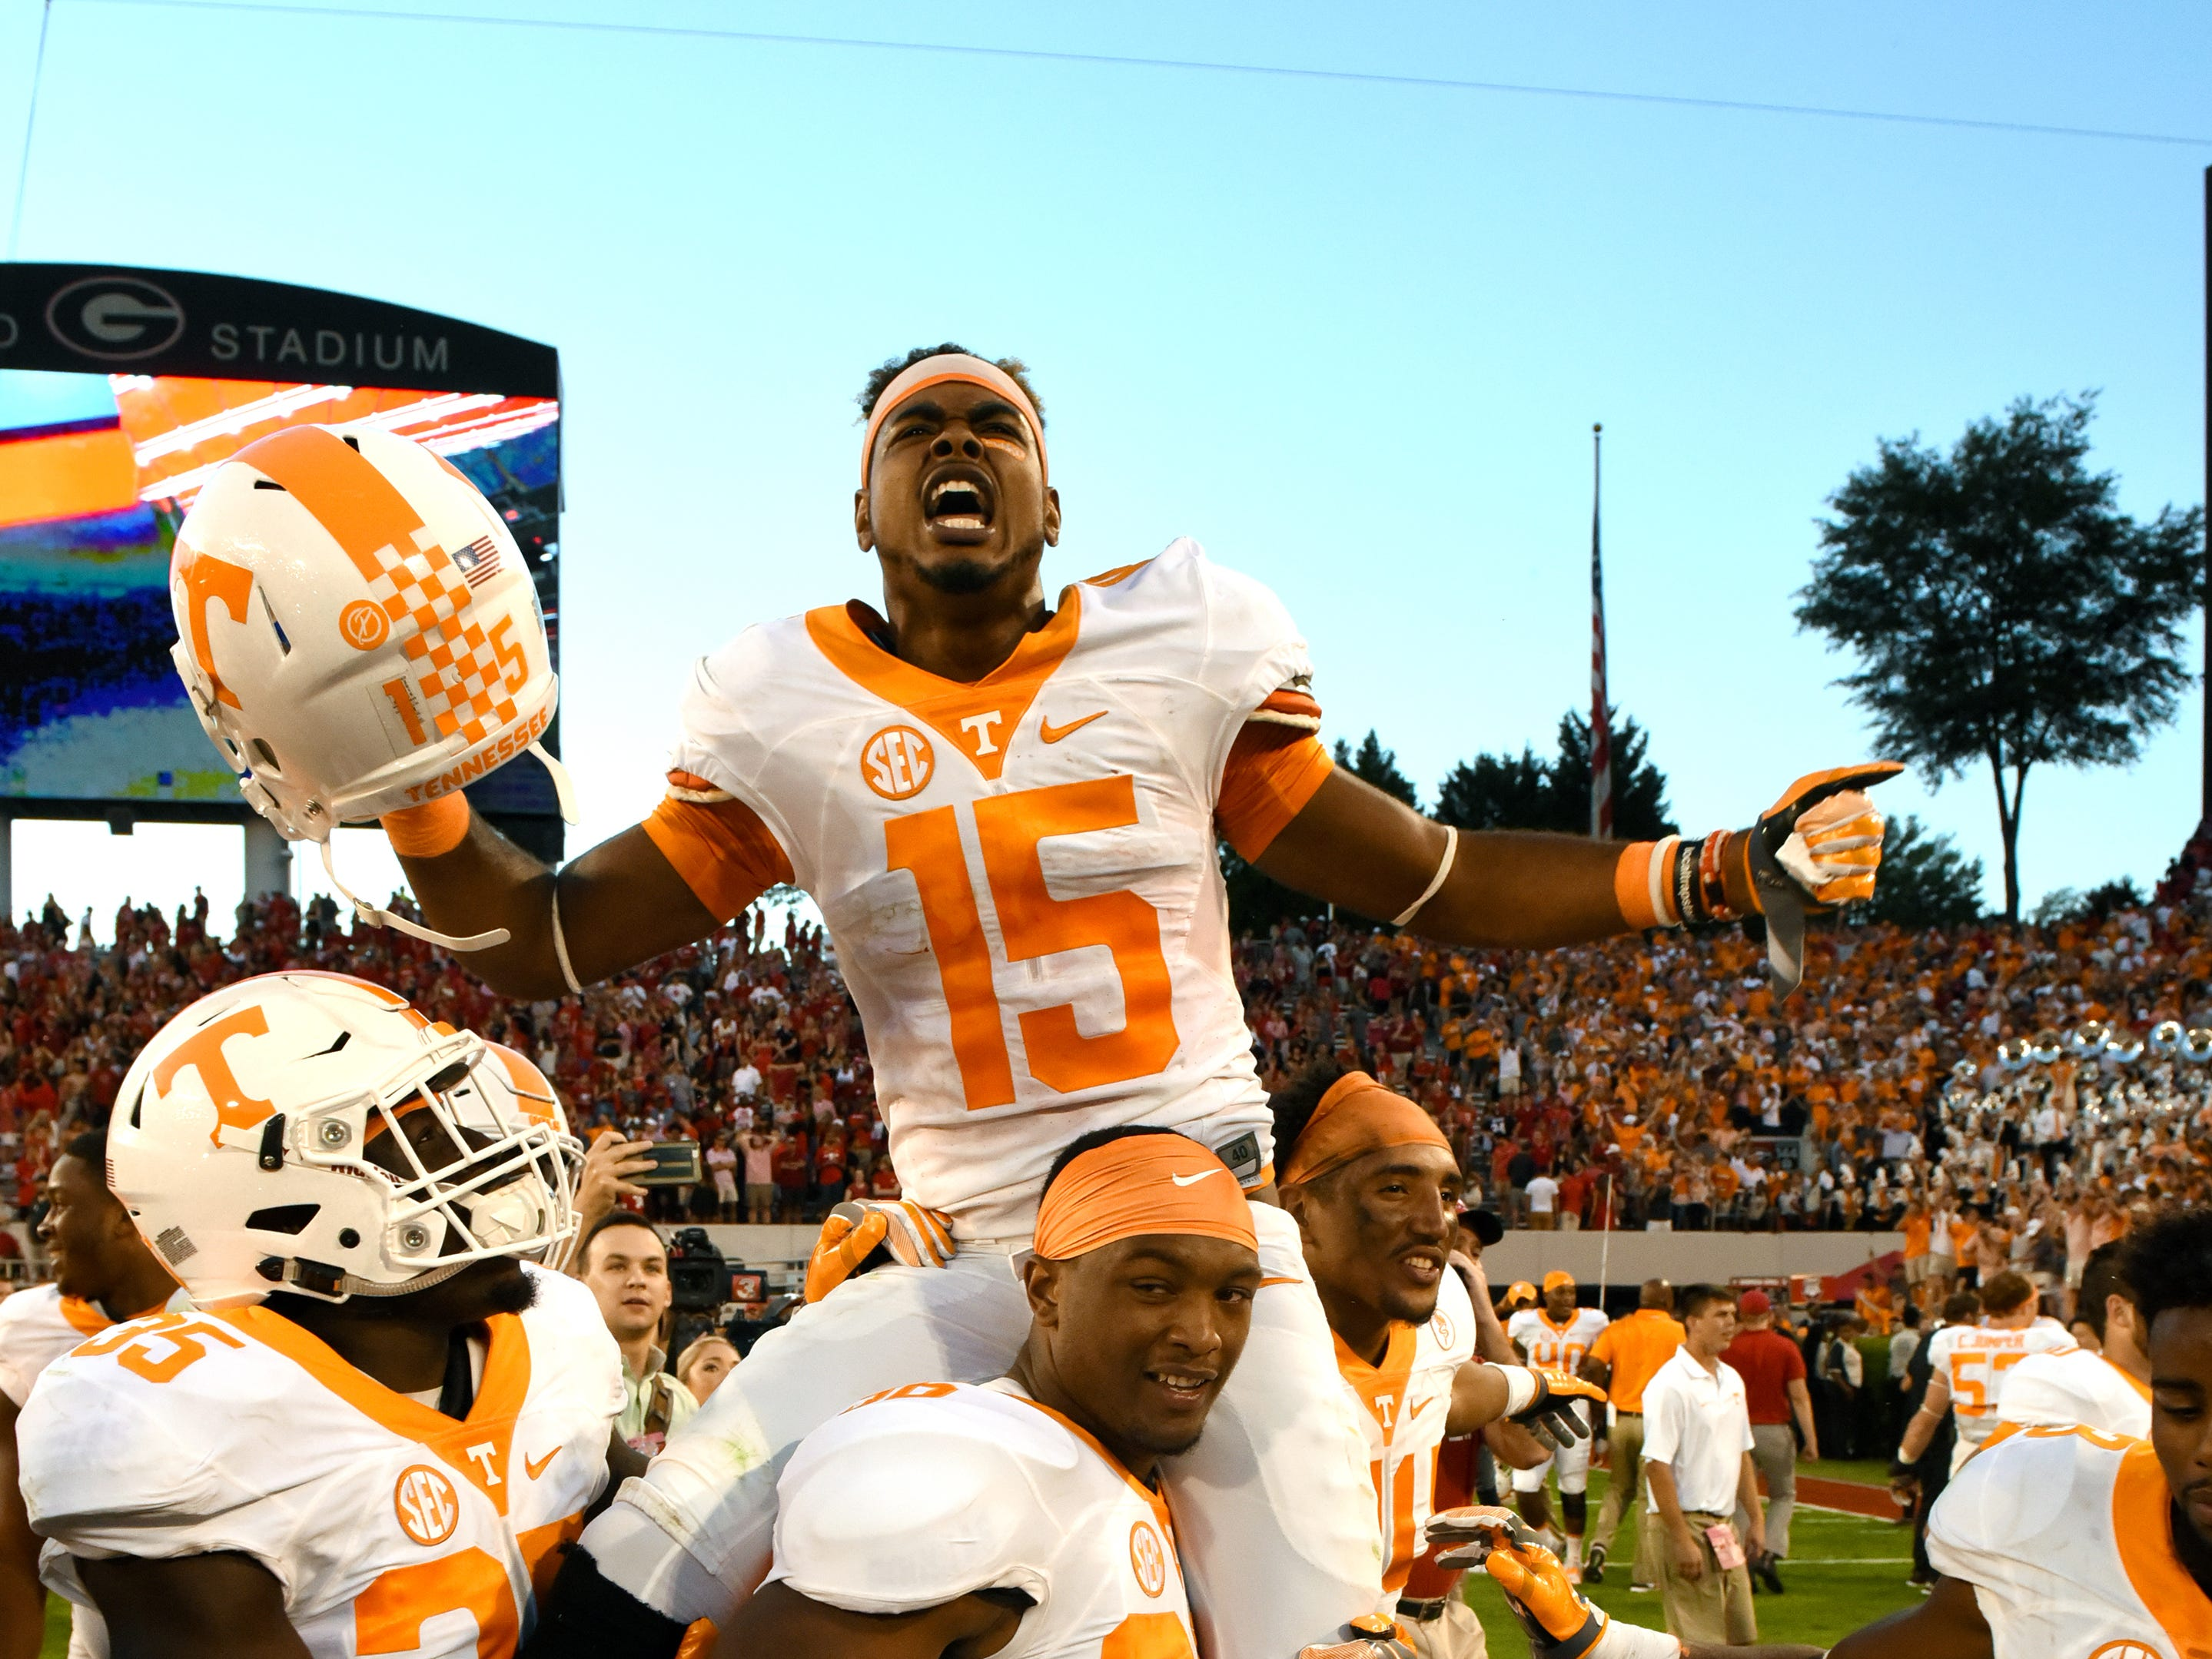 Tennessee wide receiver Jauan Jennings (15) is carried off the field by linebacker Gavin Bryant (36) following their 34-31 win over Georgia at Sanford Stadium Saturday, Oct. 1, 2016 in Athens, Ga.